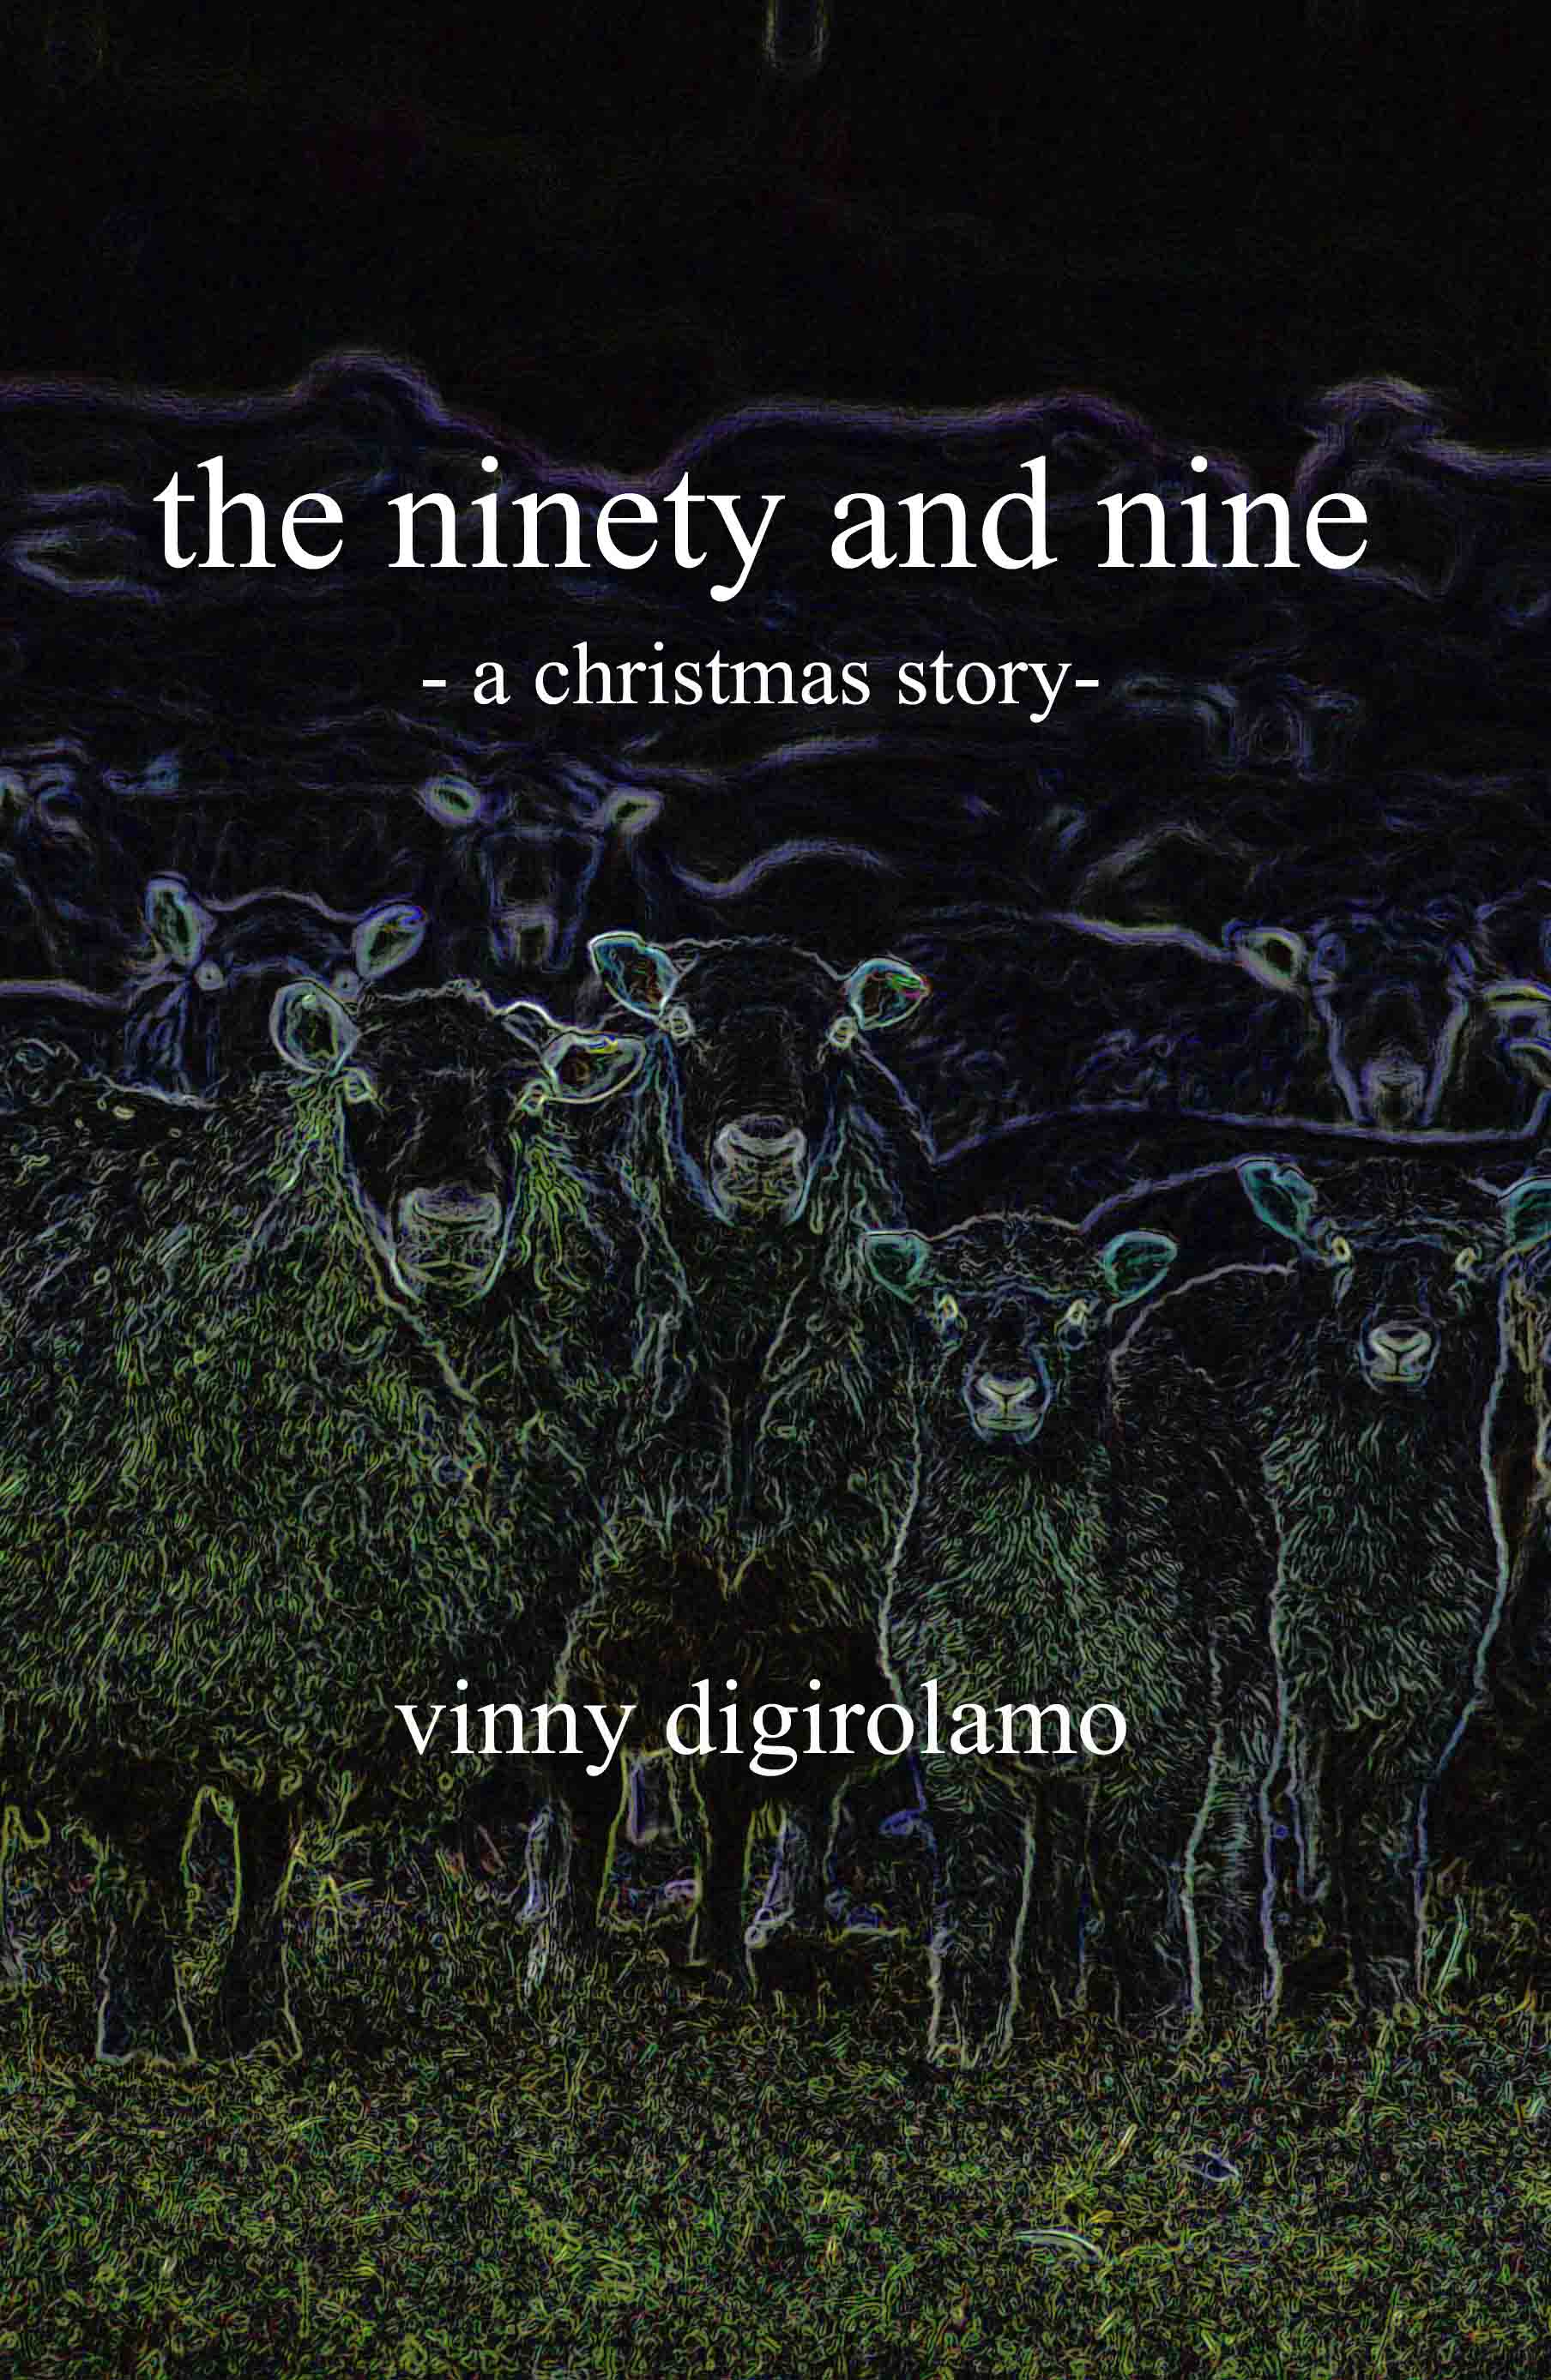 the ninety and nine – a christmas story